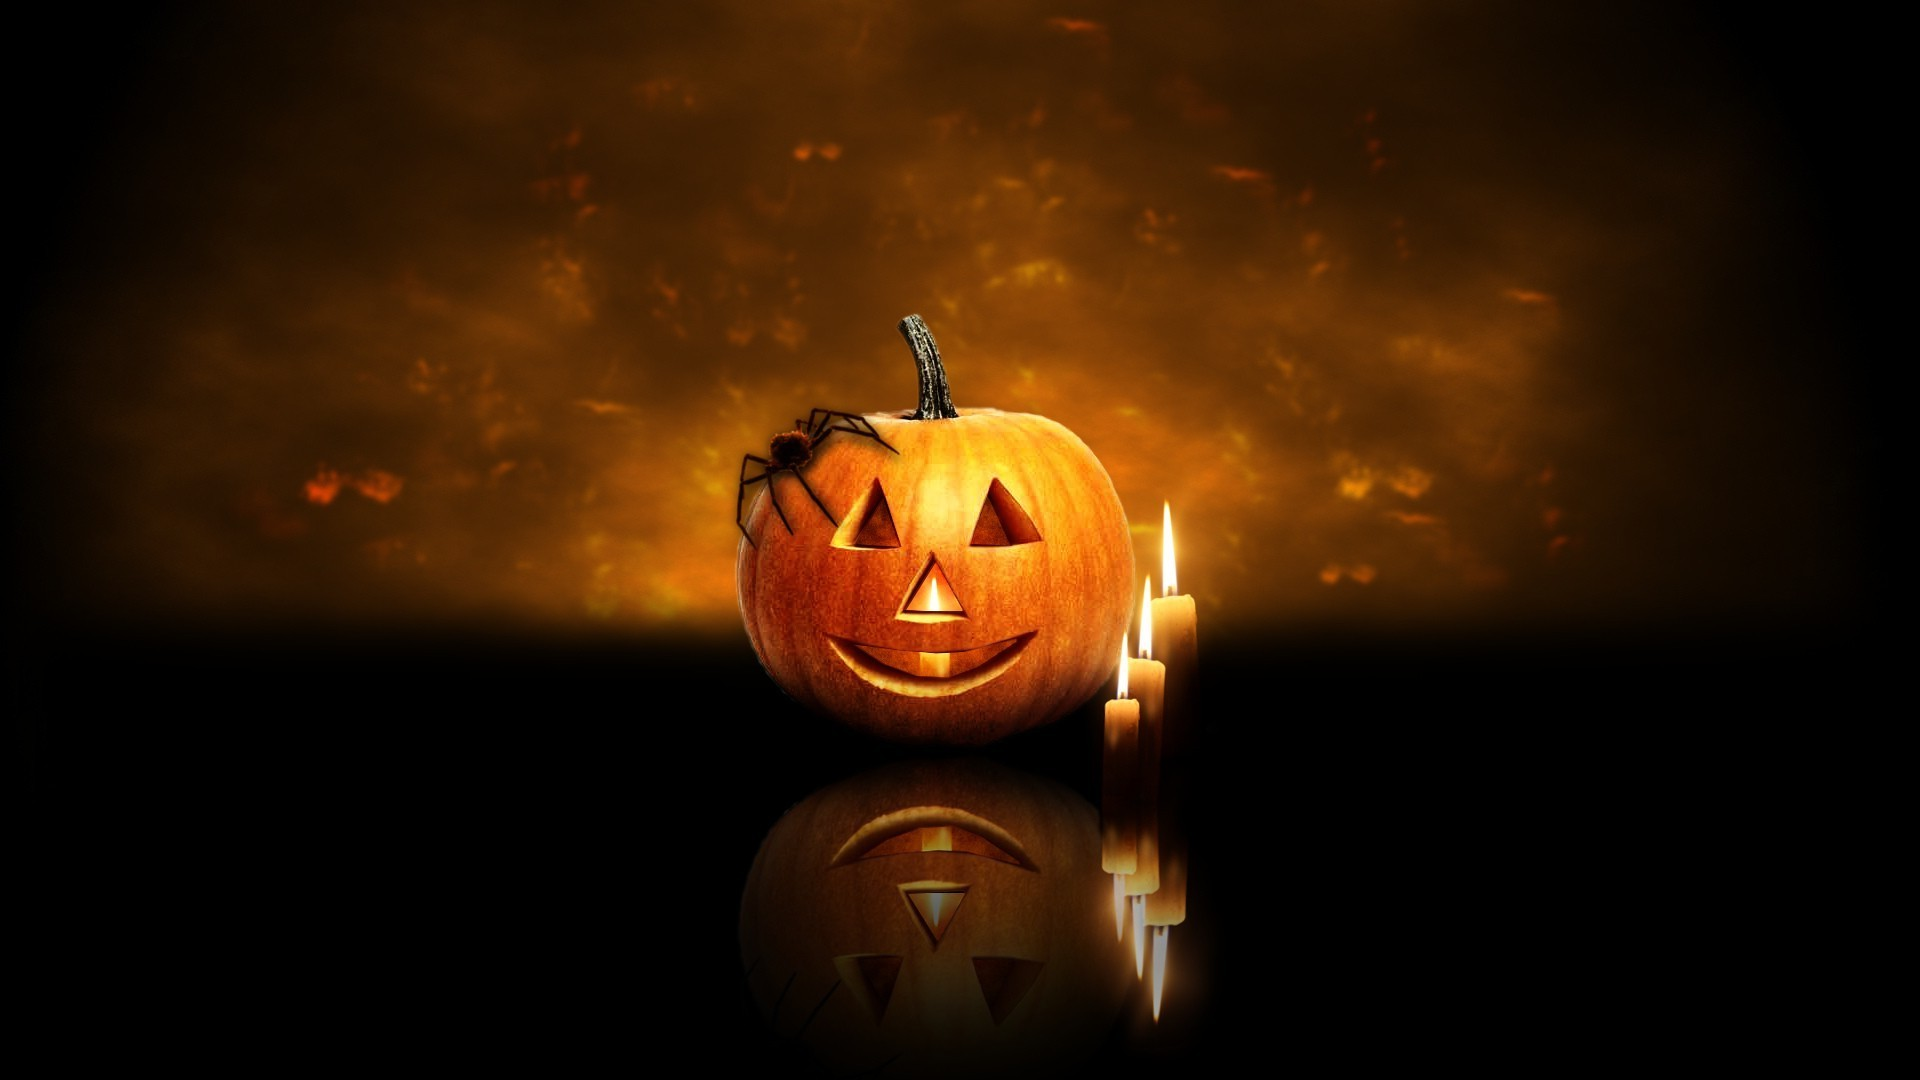 Animated Halloween Wallpapers with Music - WallpaperSafari